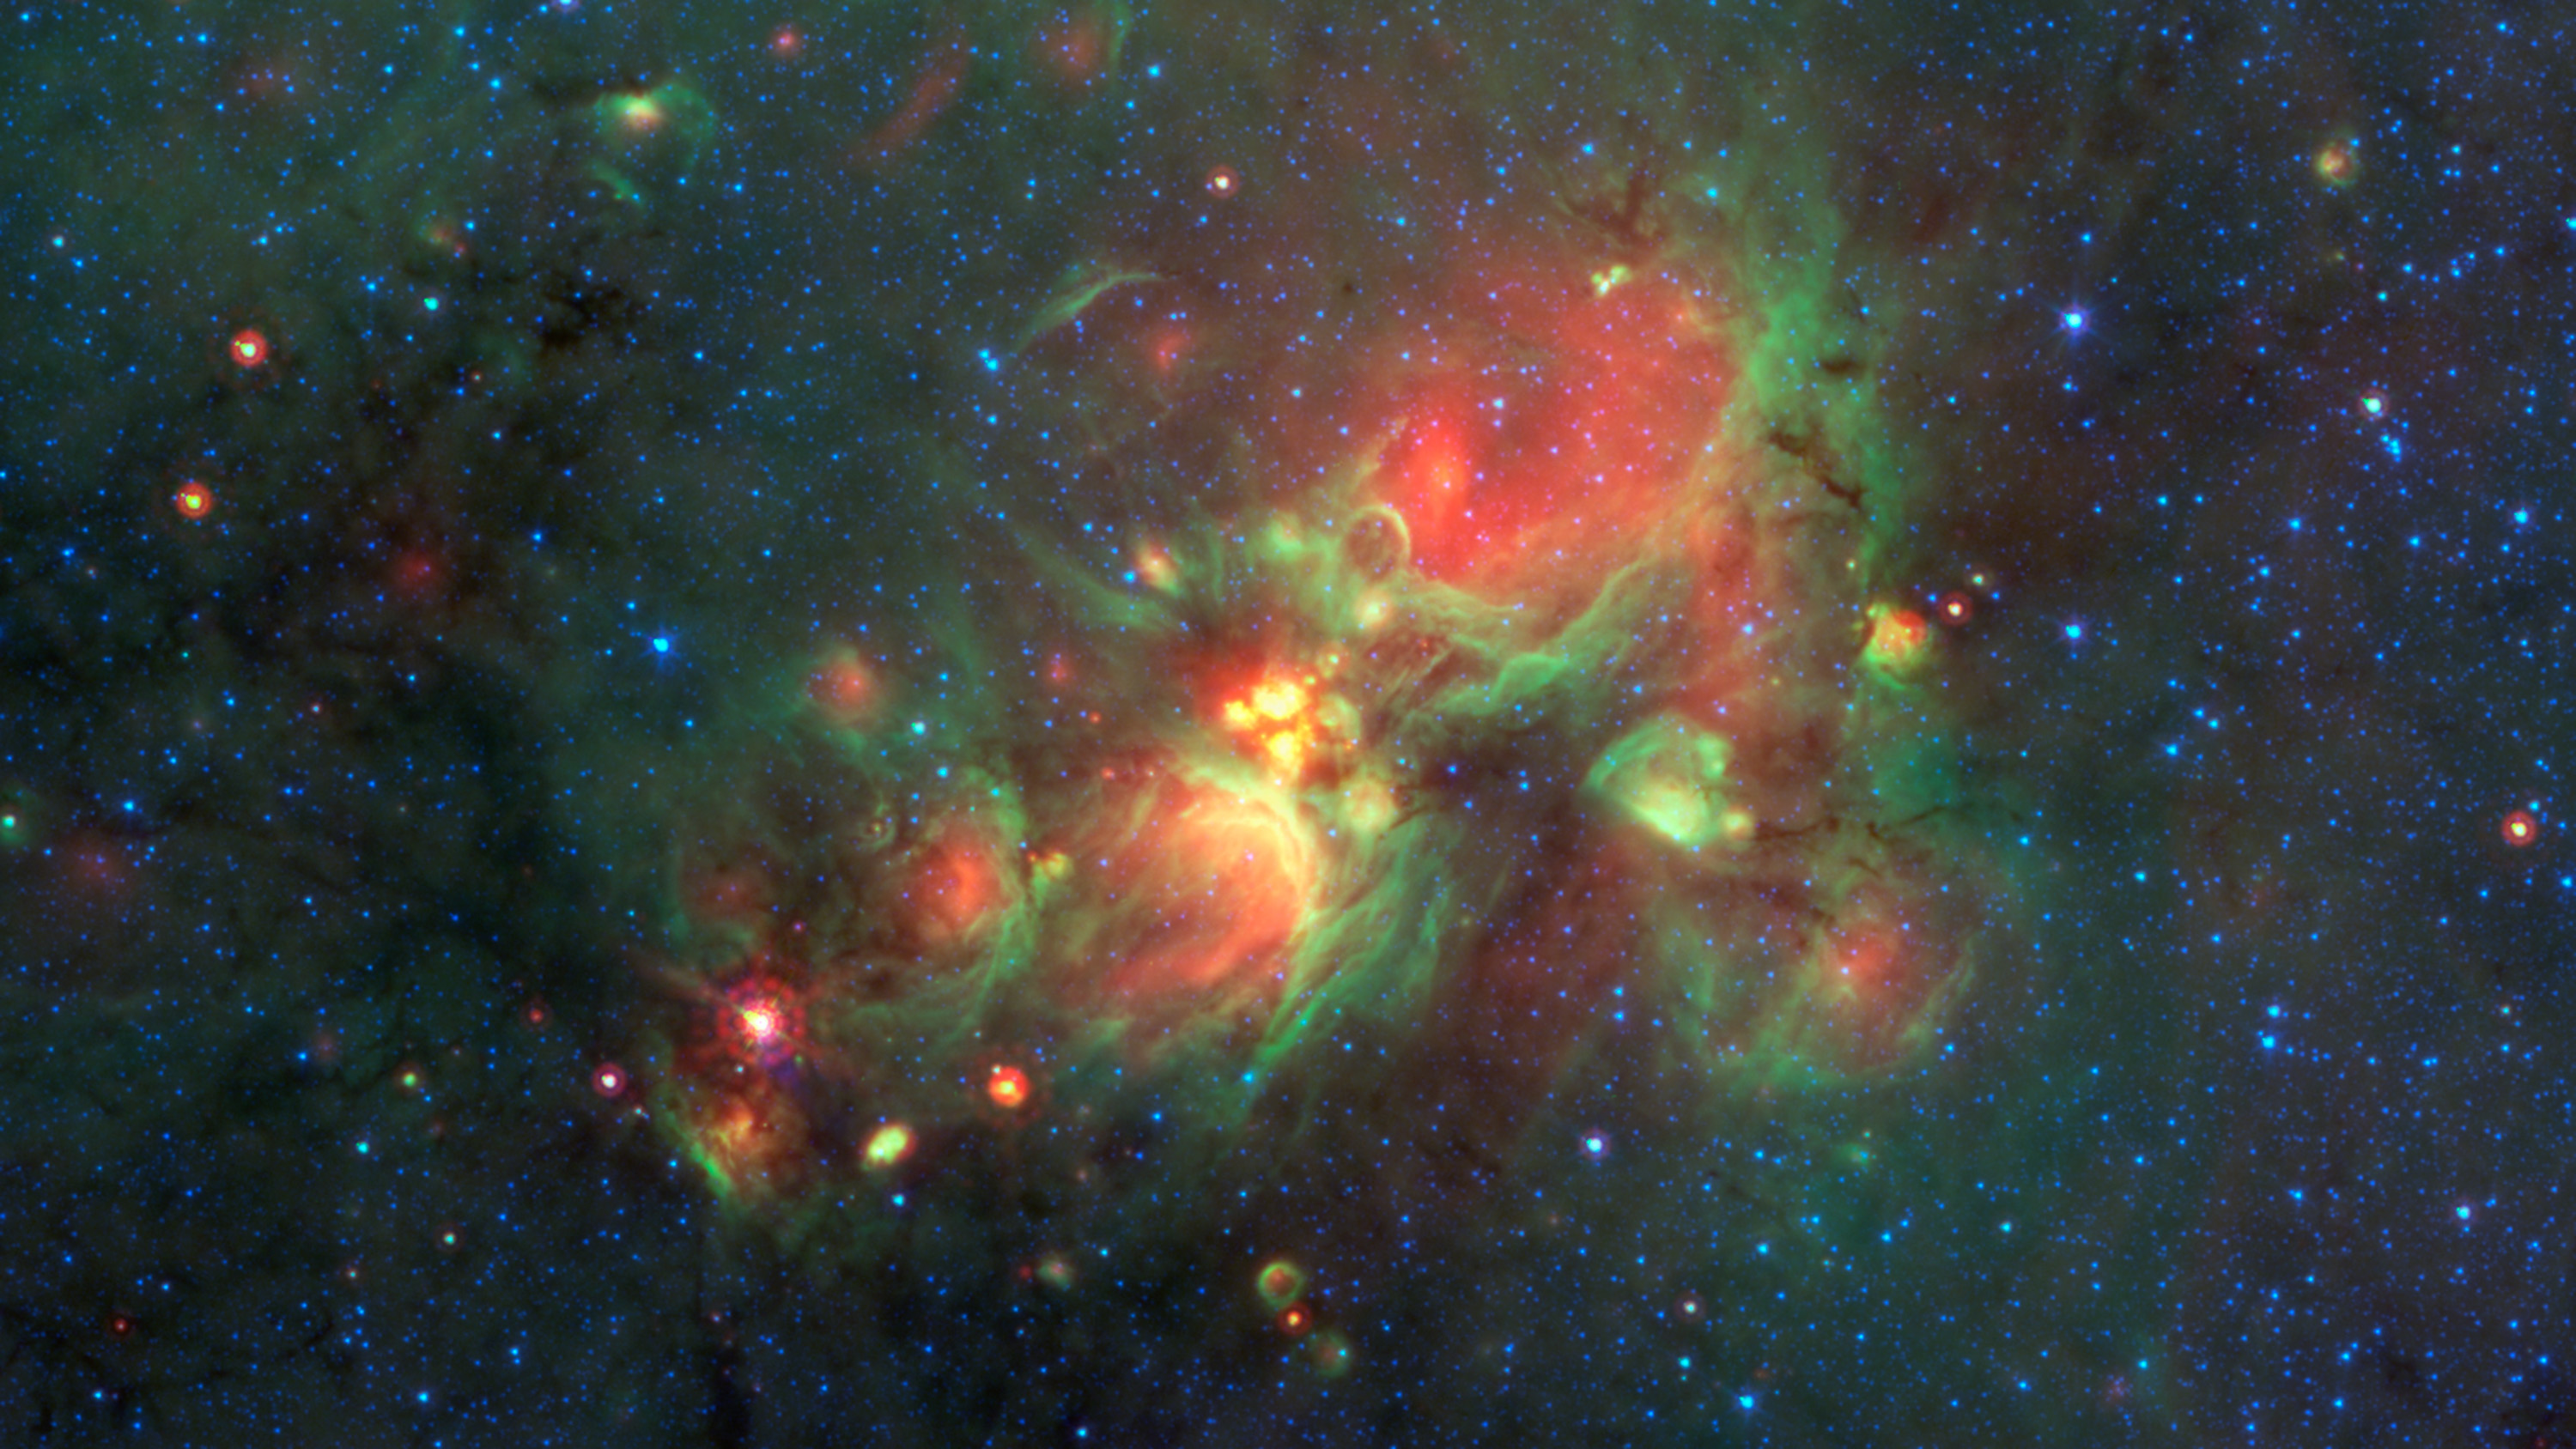 "Volunteers using the web-based Milky Way Project brought star-forming features nicknamed ""yellowballs"" to the attention of researchers, who later showed that they are a phase of massive star formation. The yellow balls -- which are several hundred to thousands times the size of our solar system -- are pictured here in the center of this image taken by NASA's Spitzer Space Telescope. Infrared light has been assigned different colors; yellow occurs where green and red overlap. The yellow balls represent an intermediary stage of massive star formation that takes place before massive stars carve out cavities in the surrounding gas and dust (seen as green-rimmed bubbles with red interiors in this image). Infrared light of 3.6 microns is blue; 8-micron light is green; and 24-micron light is red."